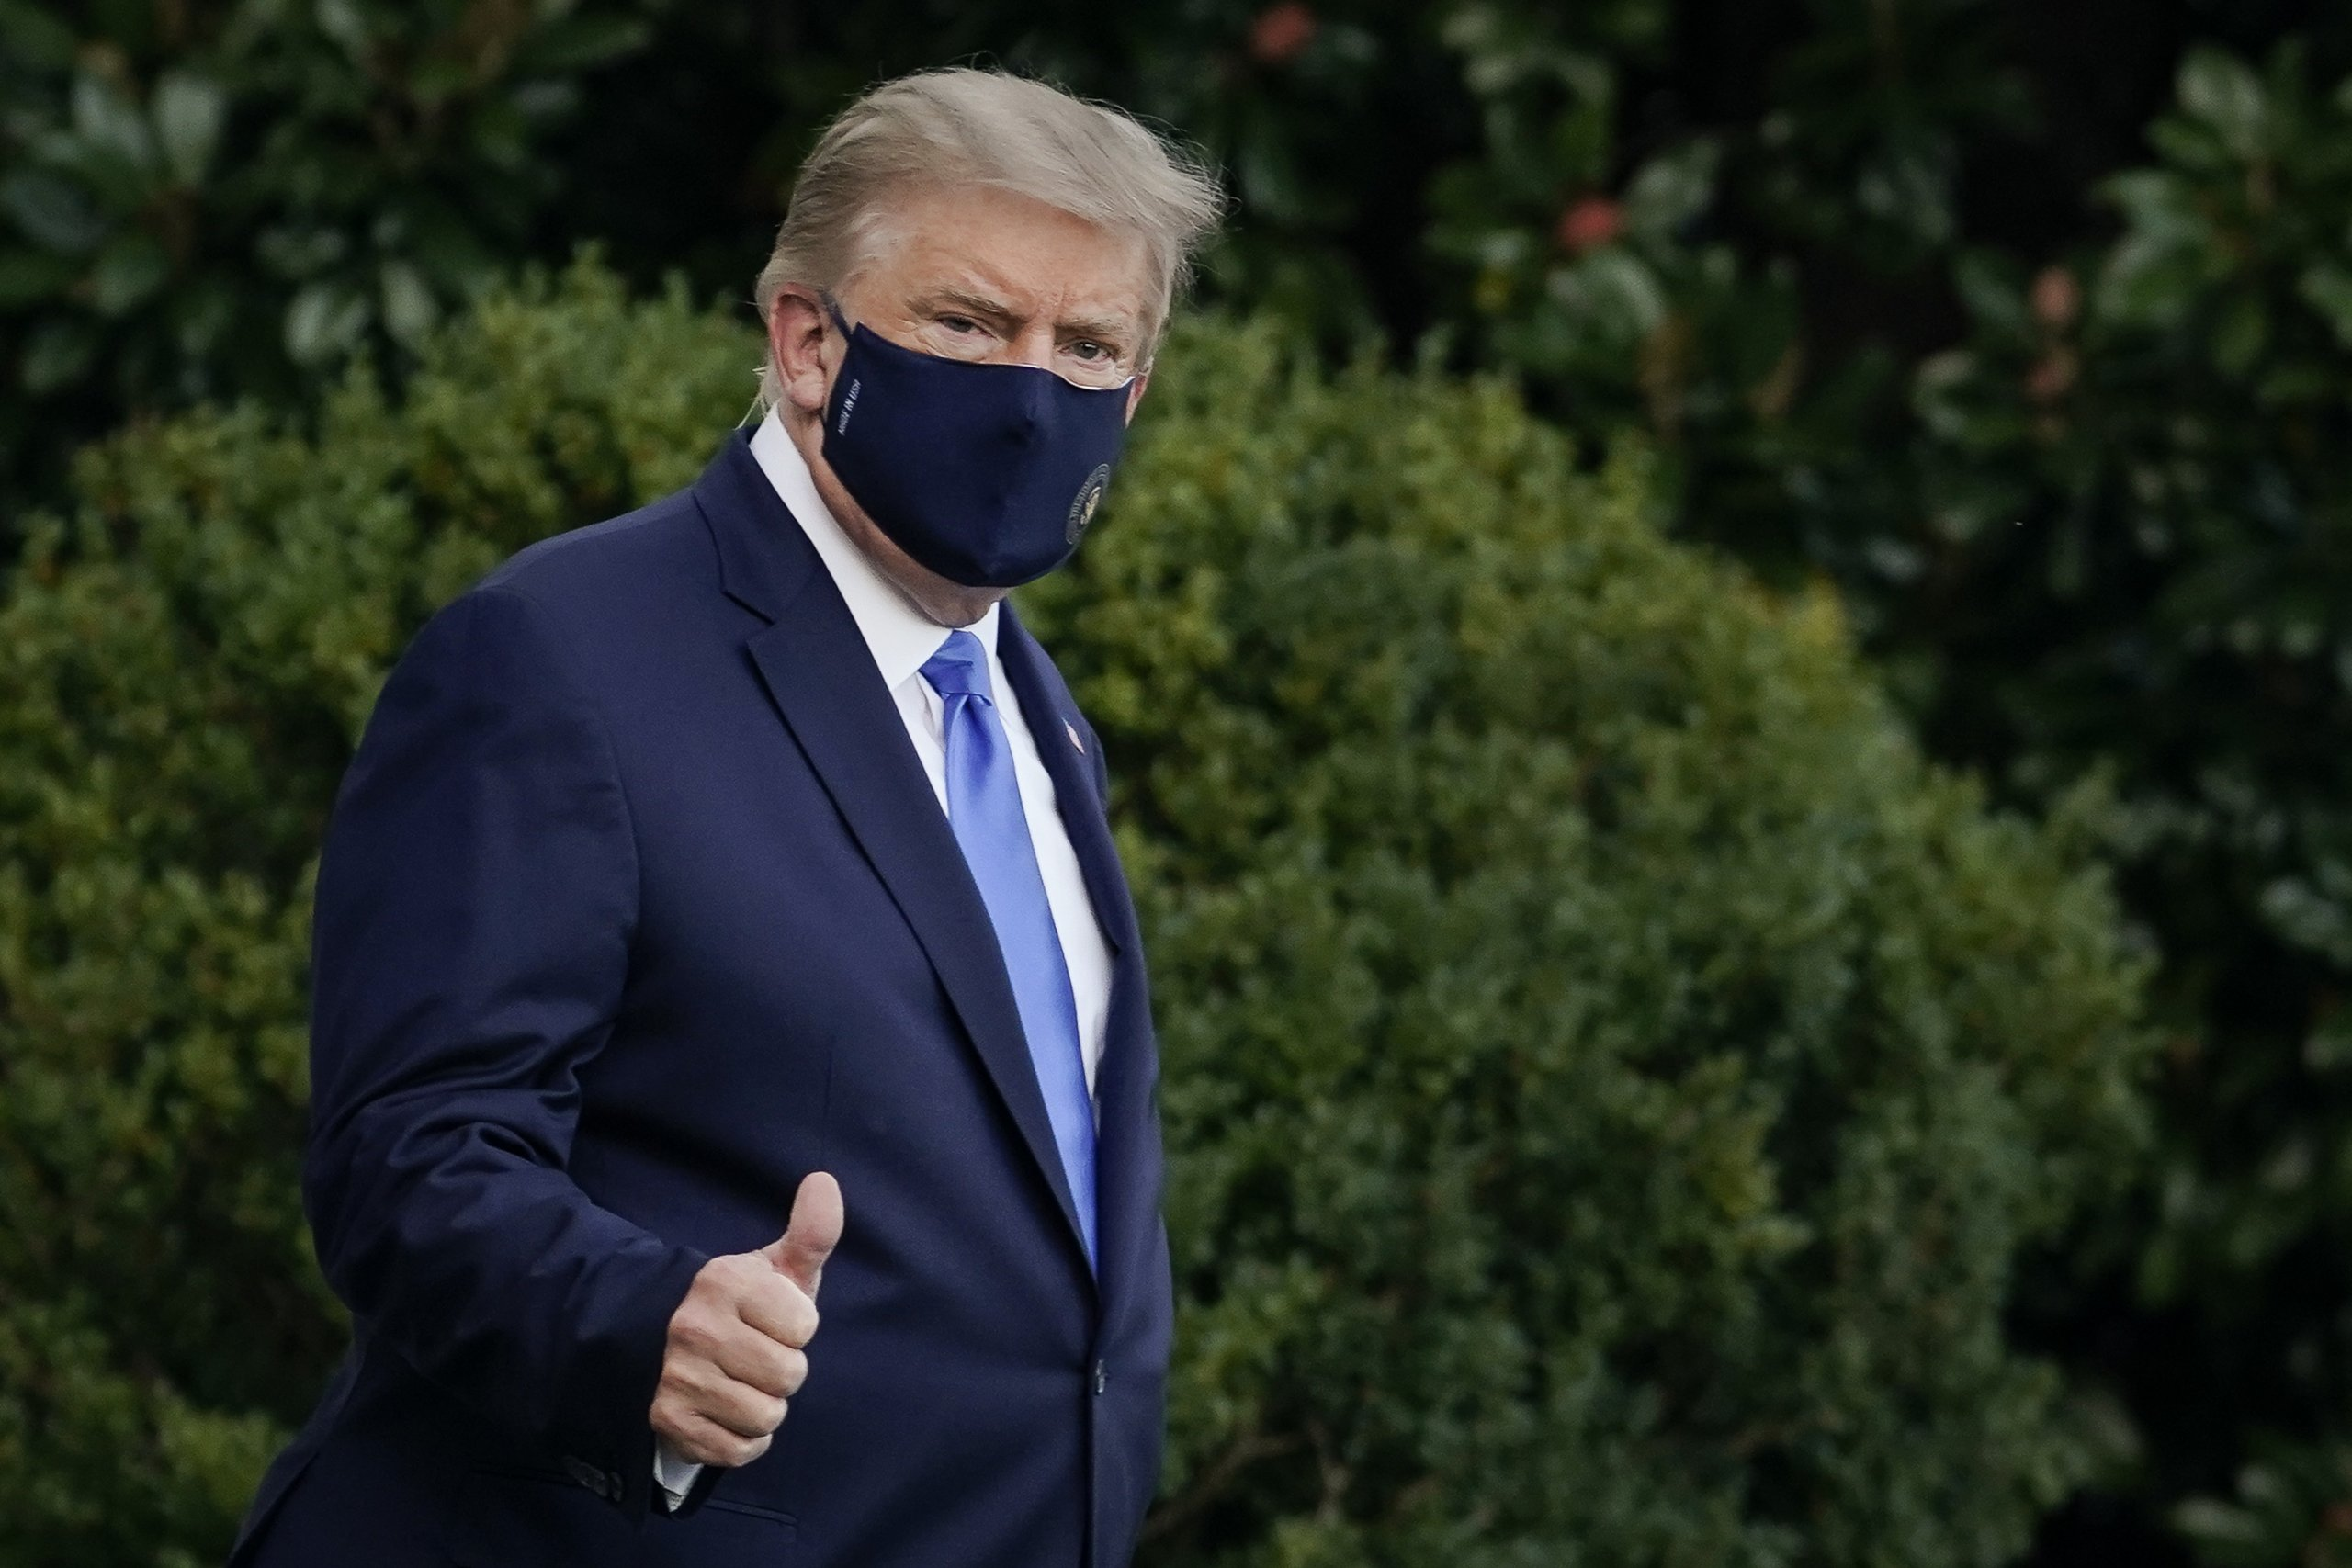 Trump returns to the White House, still infected with coronavirus